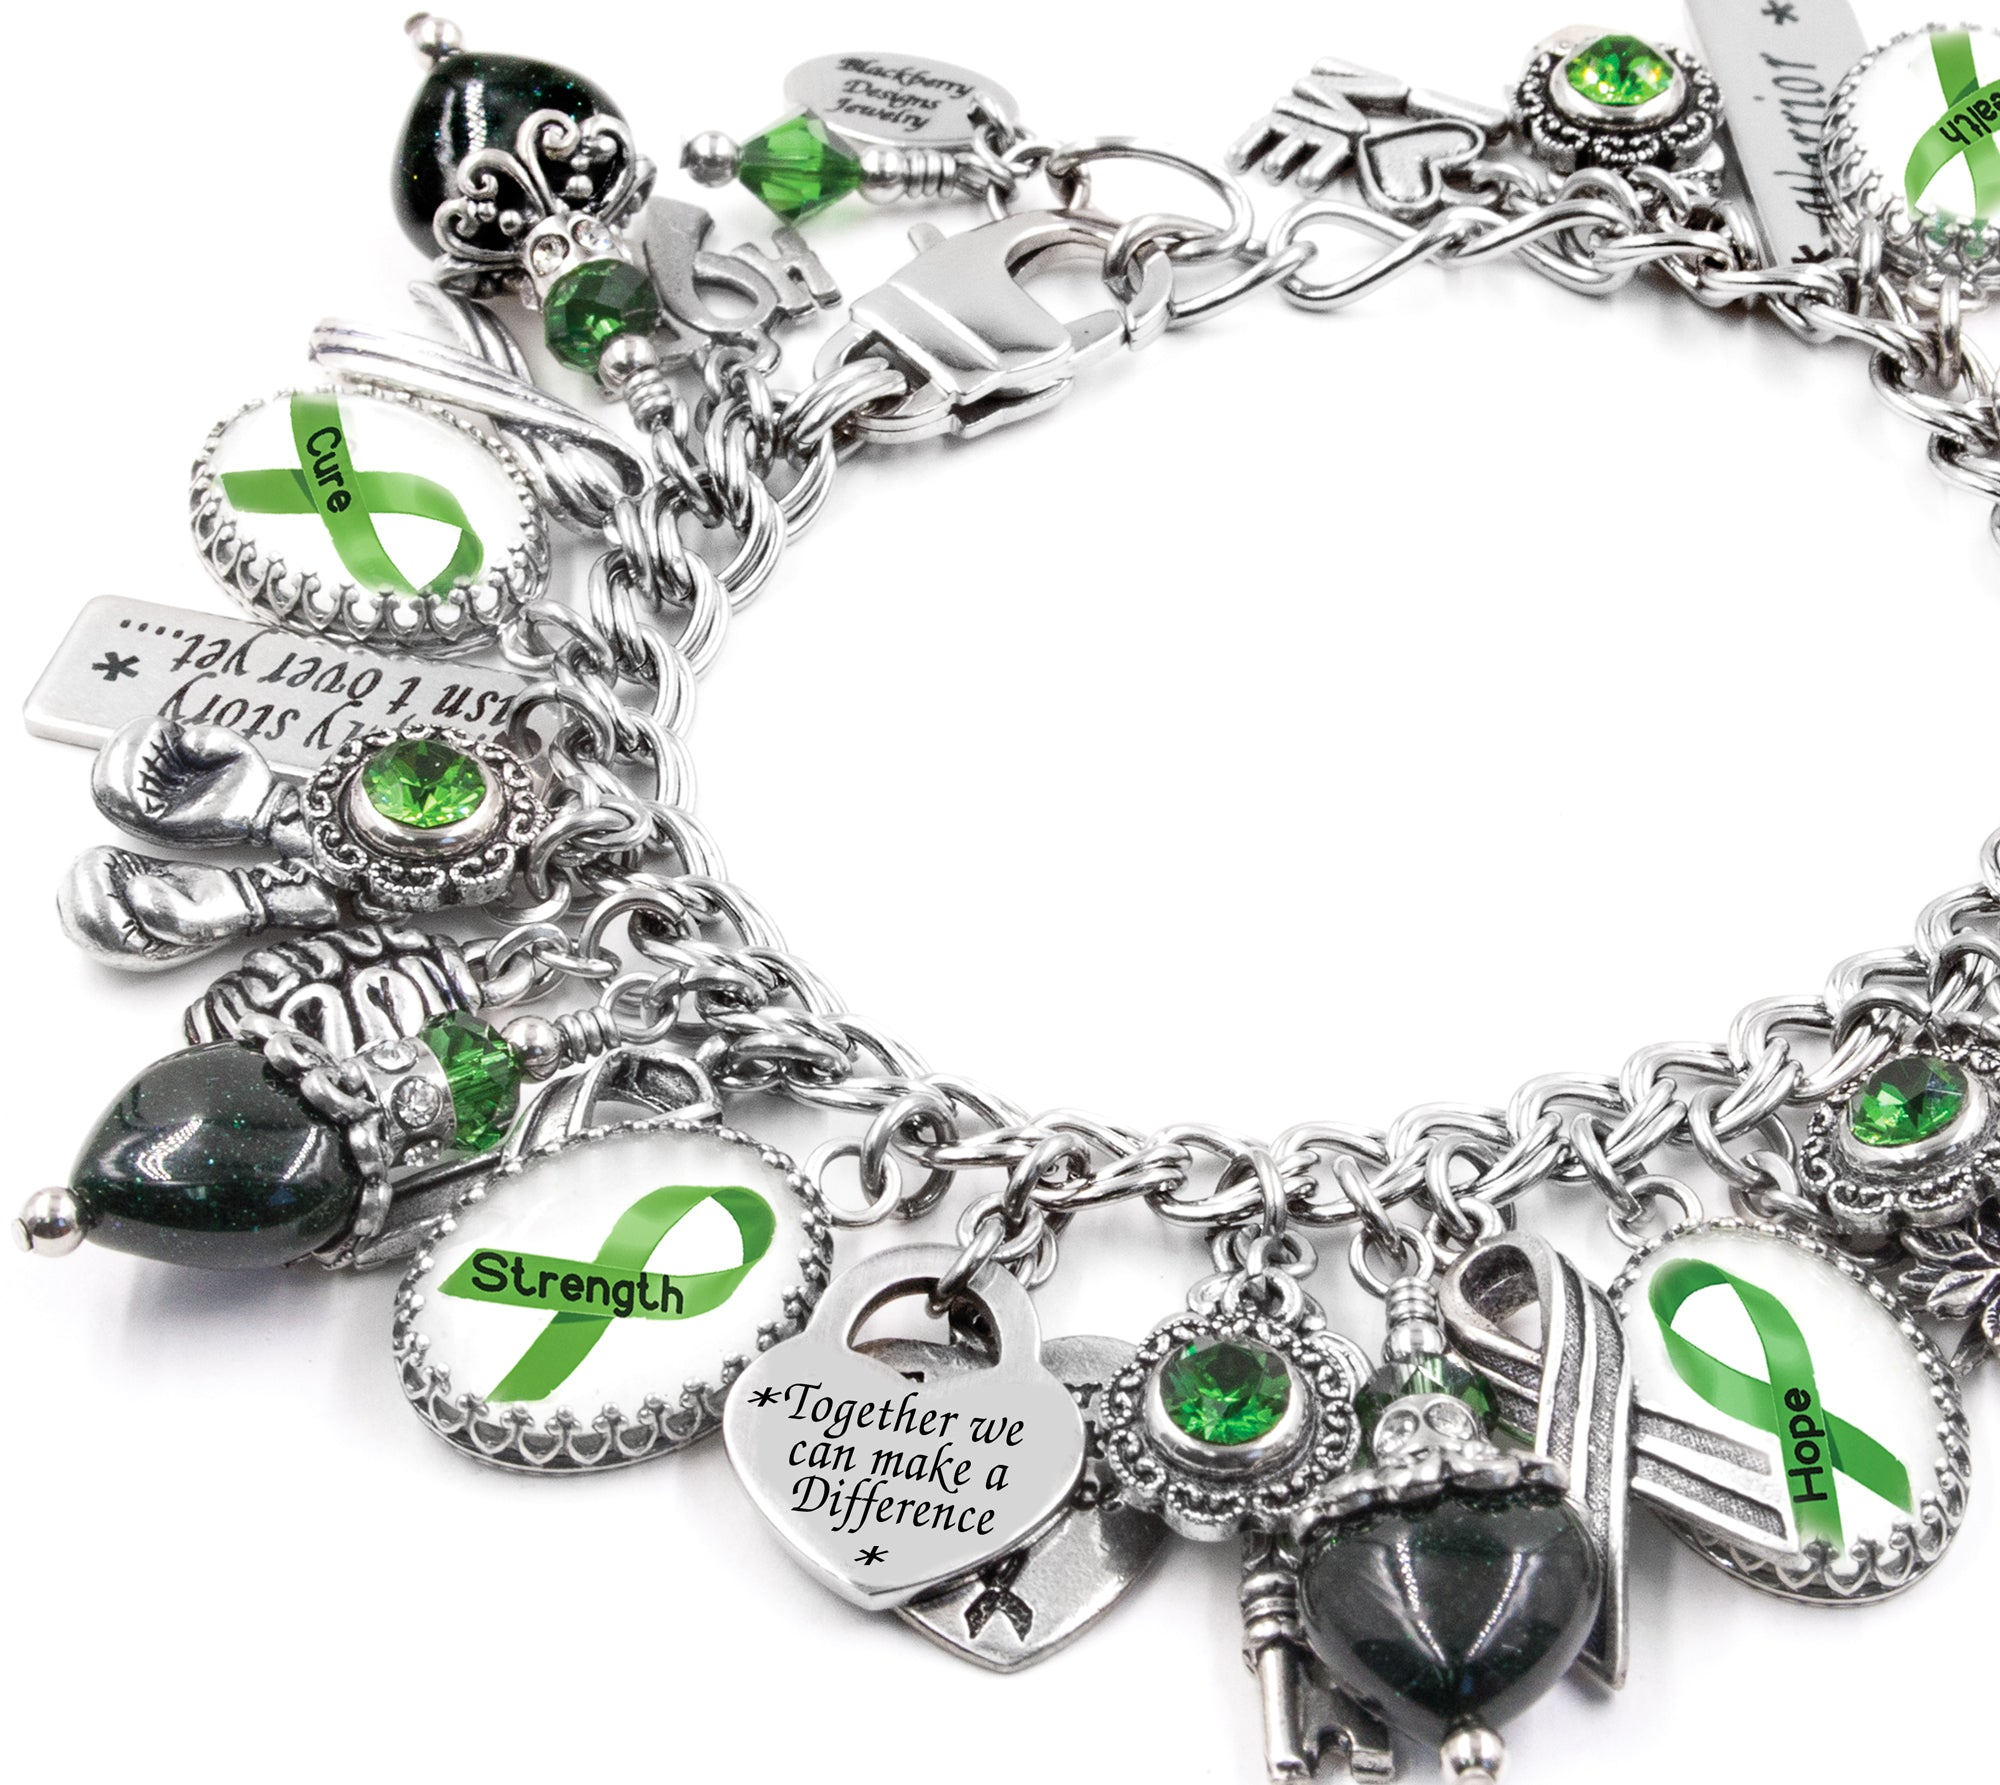 health gear mental bracelet offer aspire awareness ring products